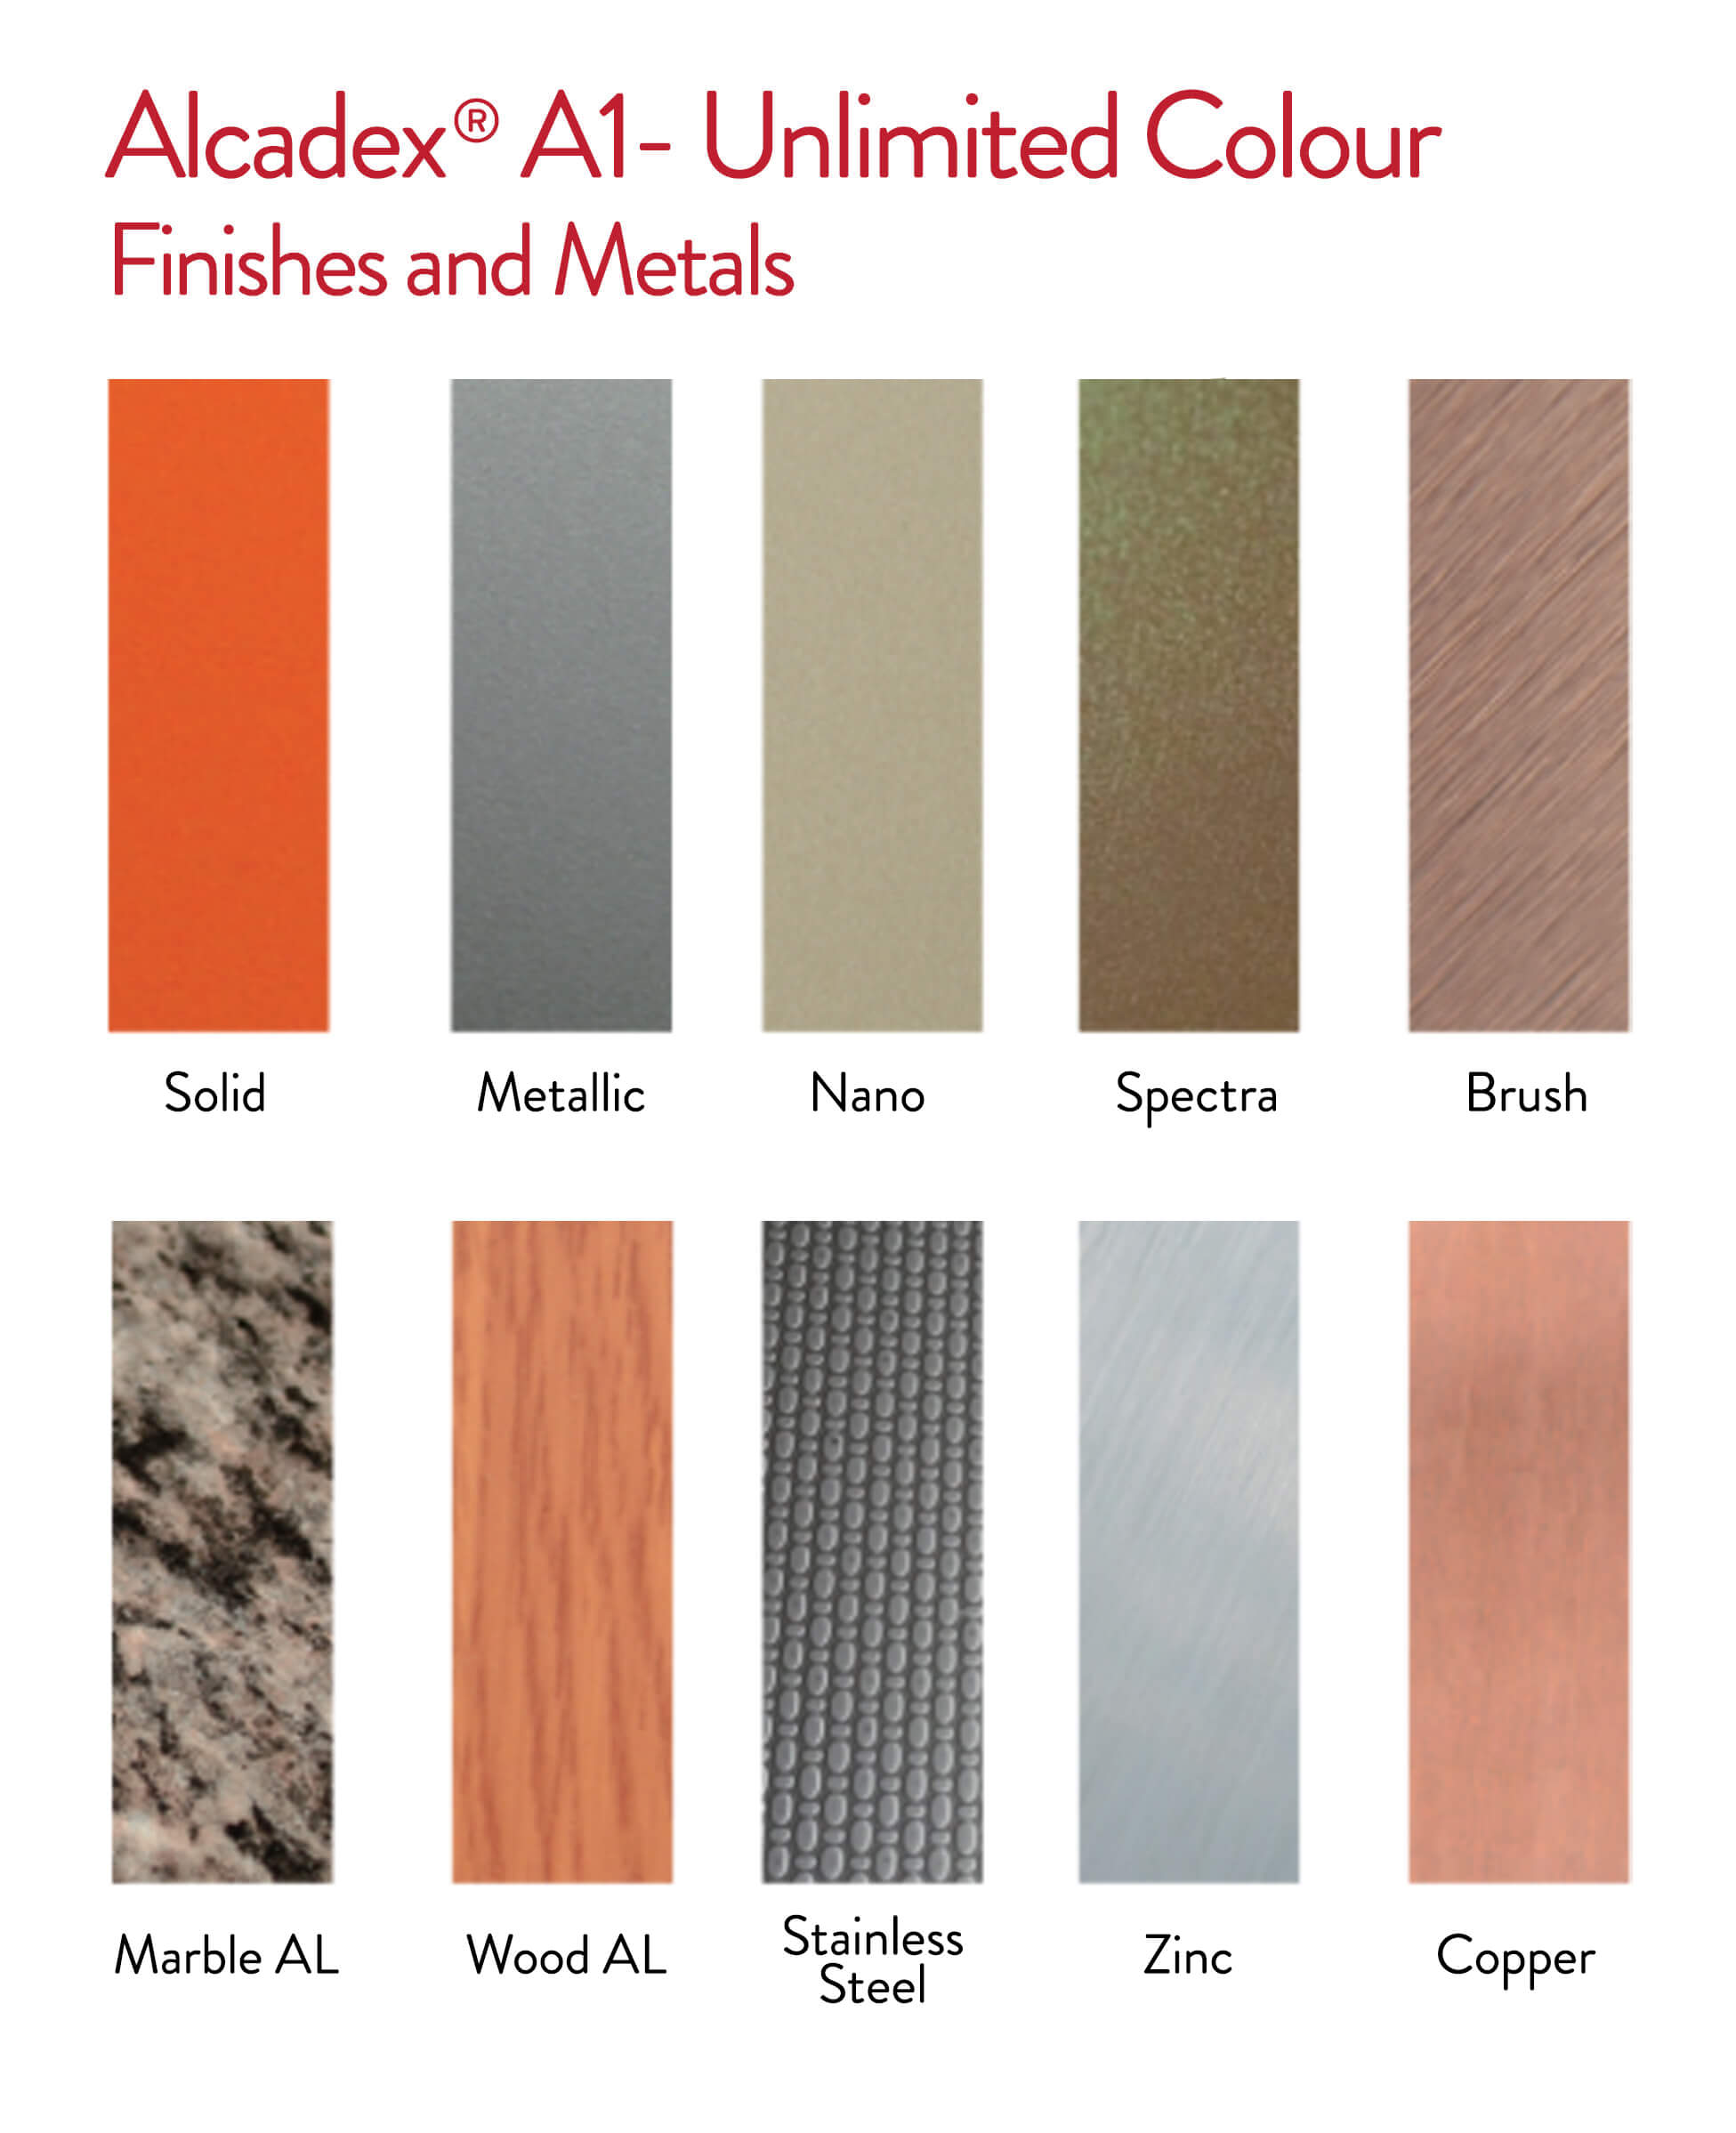 Alcadex Unlimited Colour, Finishes and Metals